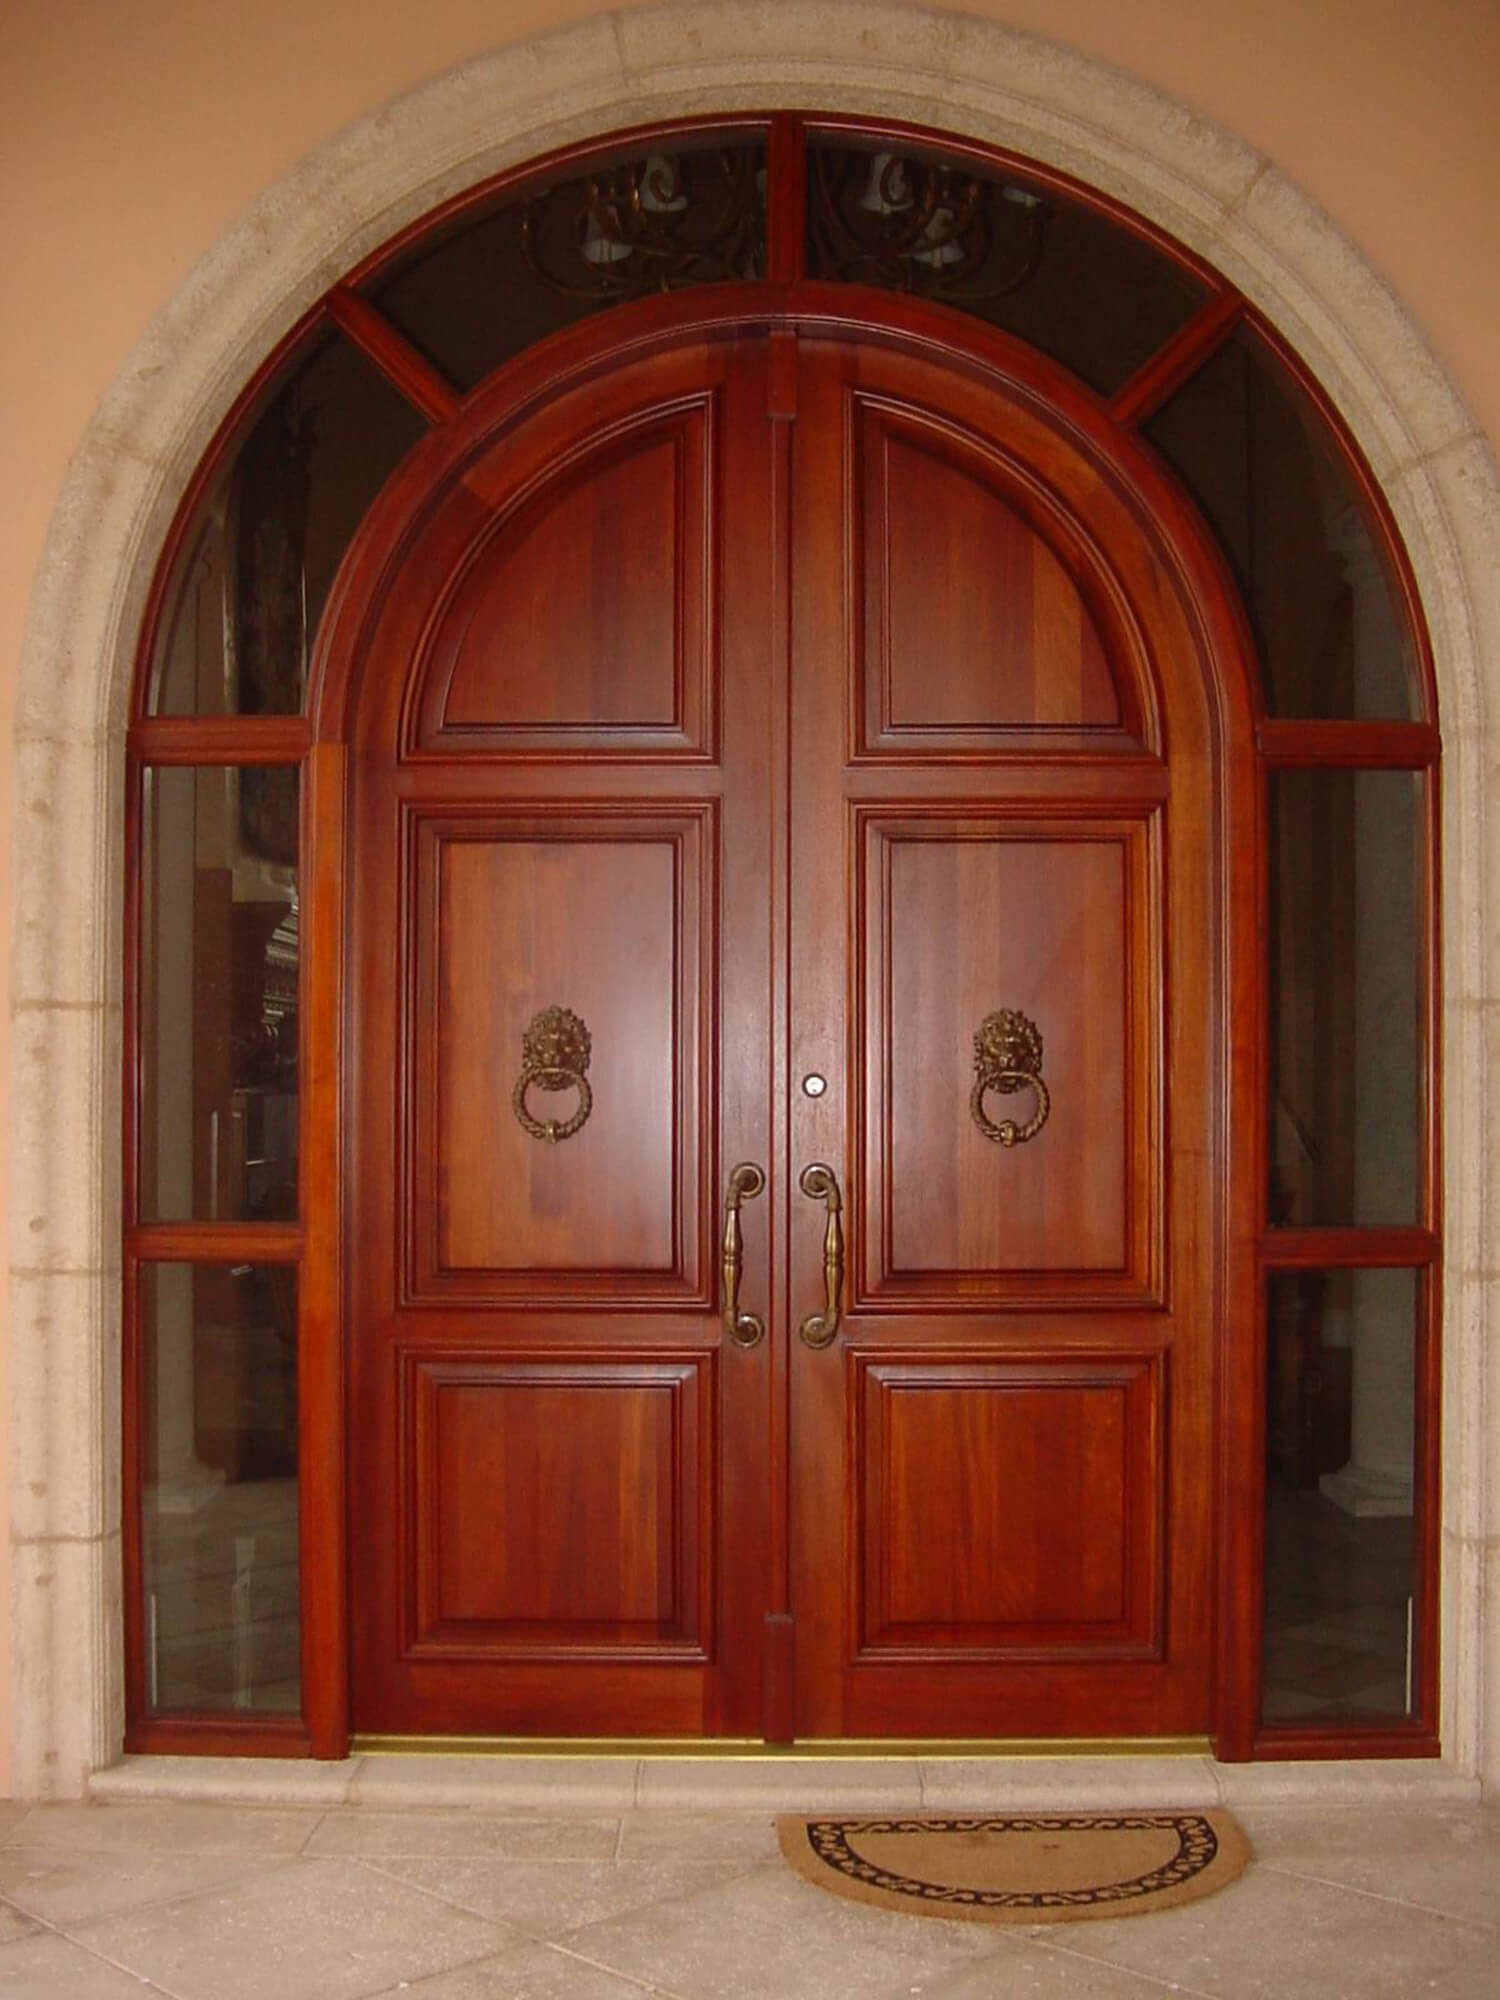 St Petersburg. Mahogany Entrance Door System